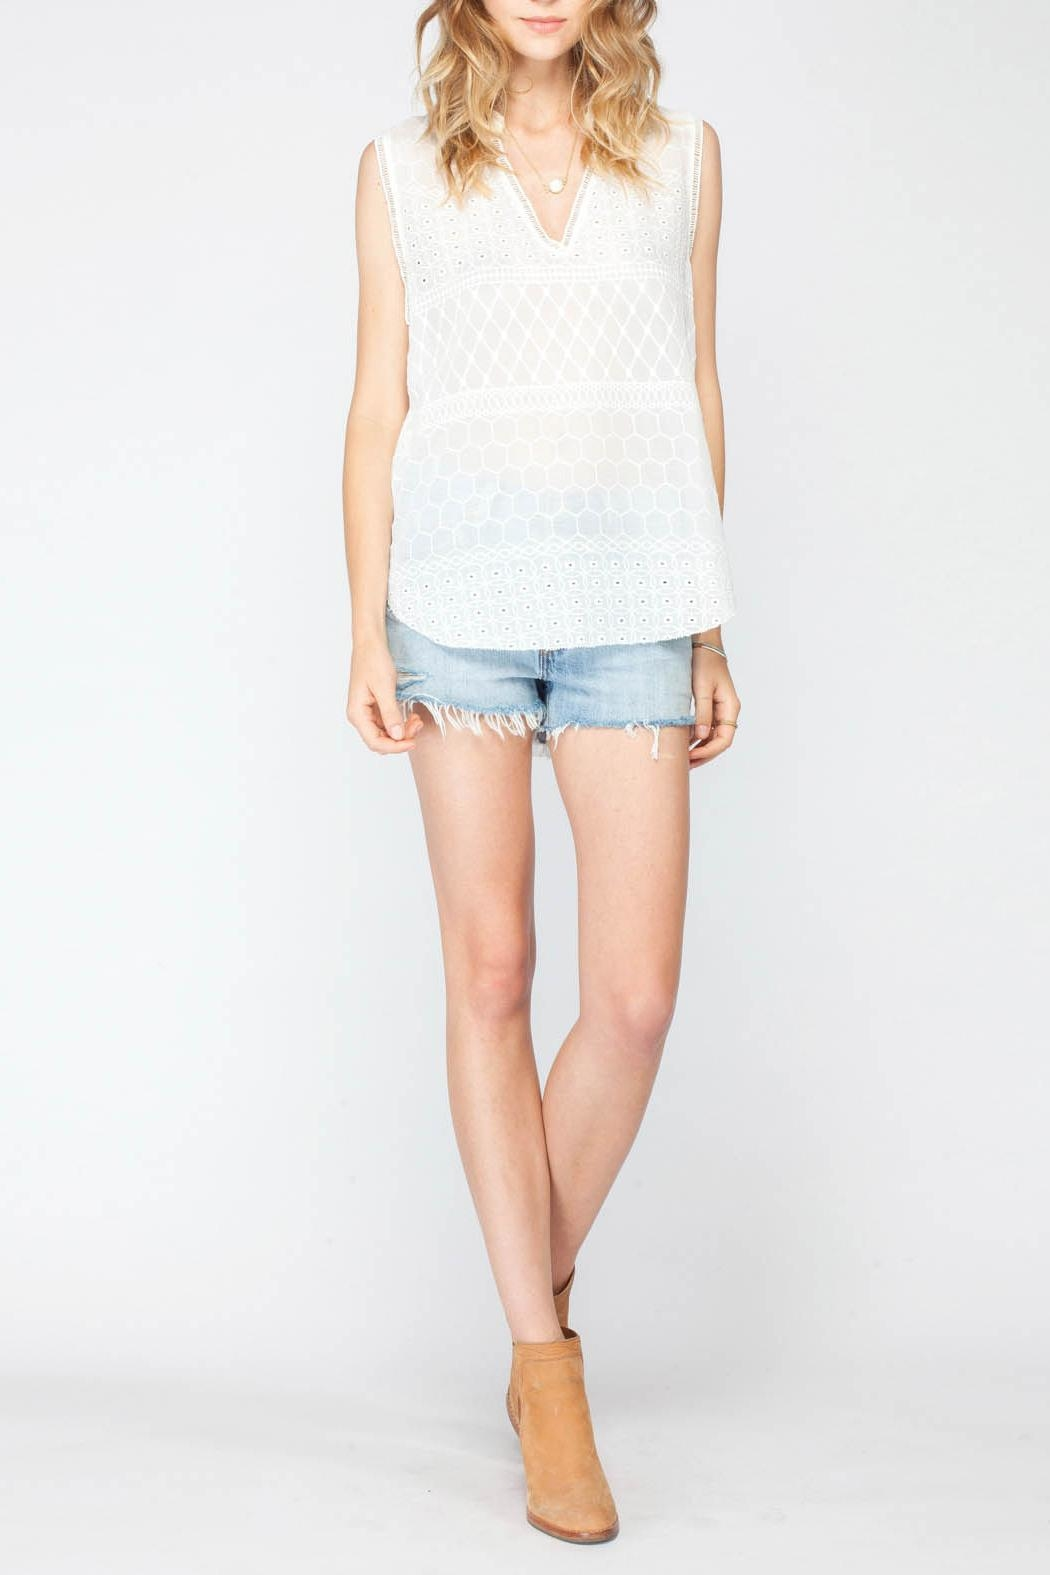 Gentle Fawn Torero Sleeveless Top - Front Cropped Image